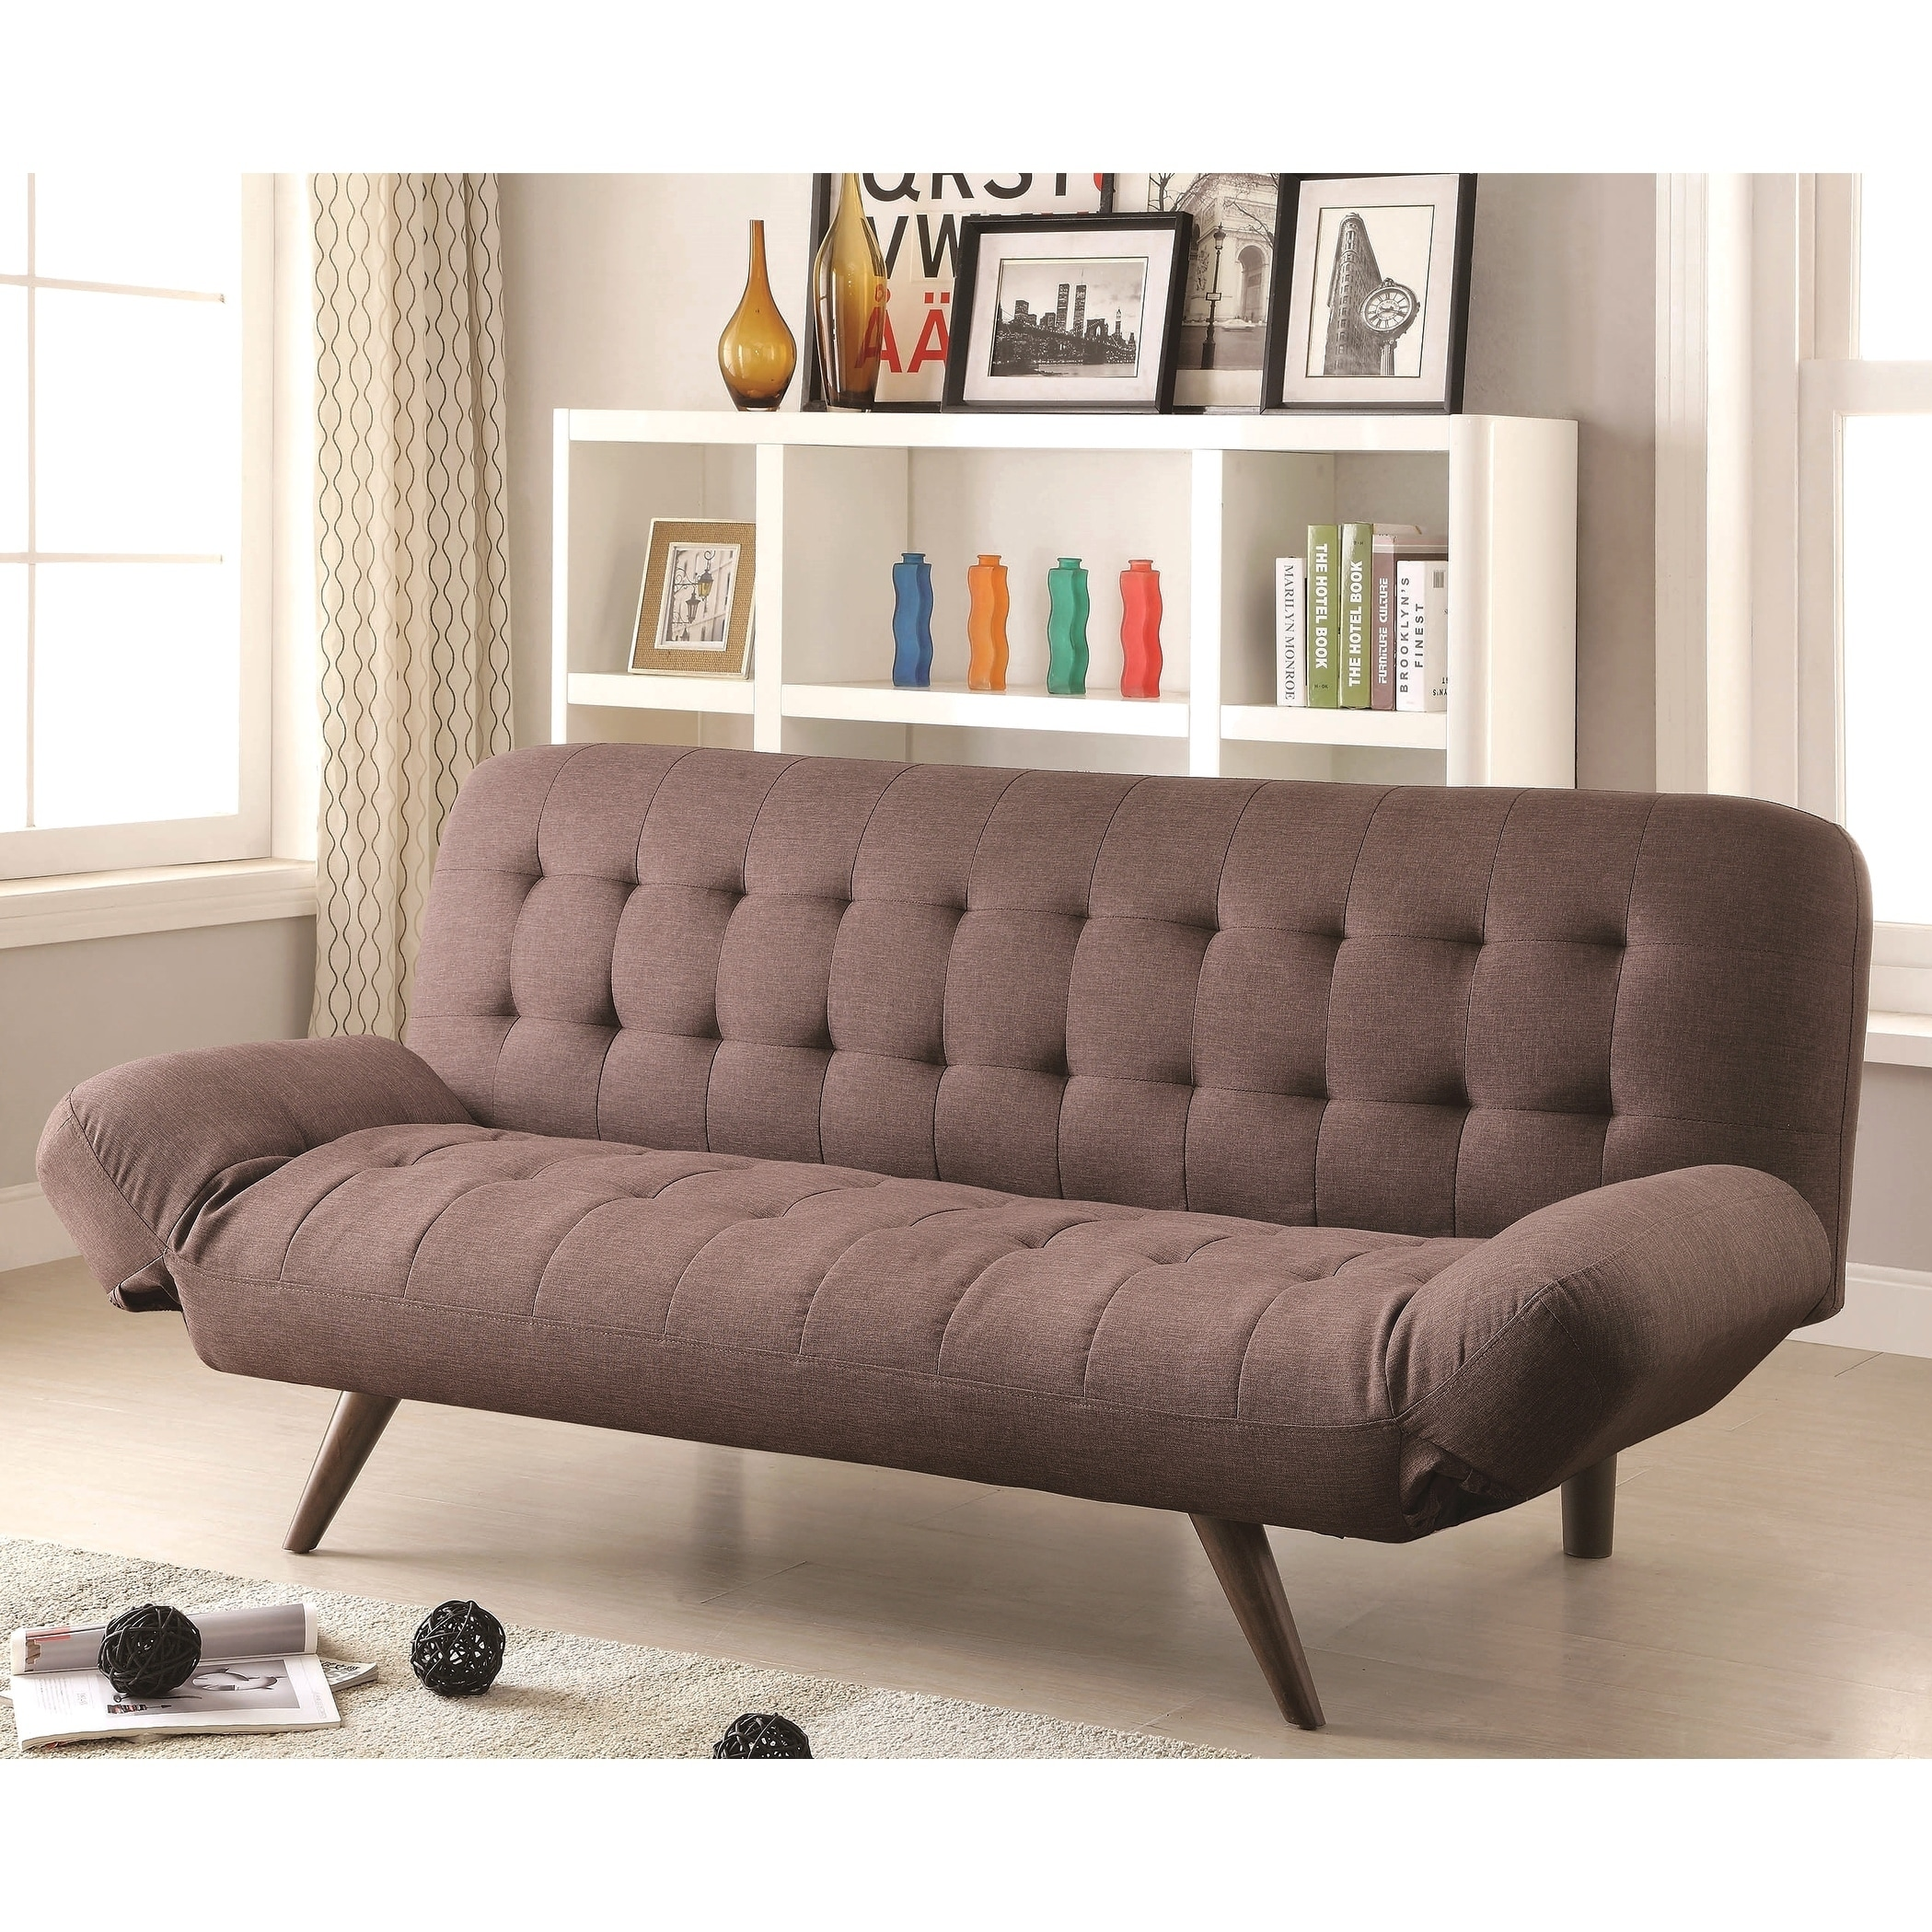 Mid-Century Modern Design Tufted Convertible Sofa Bed Futon